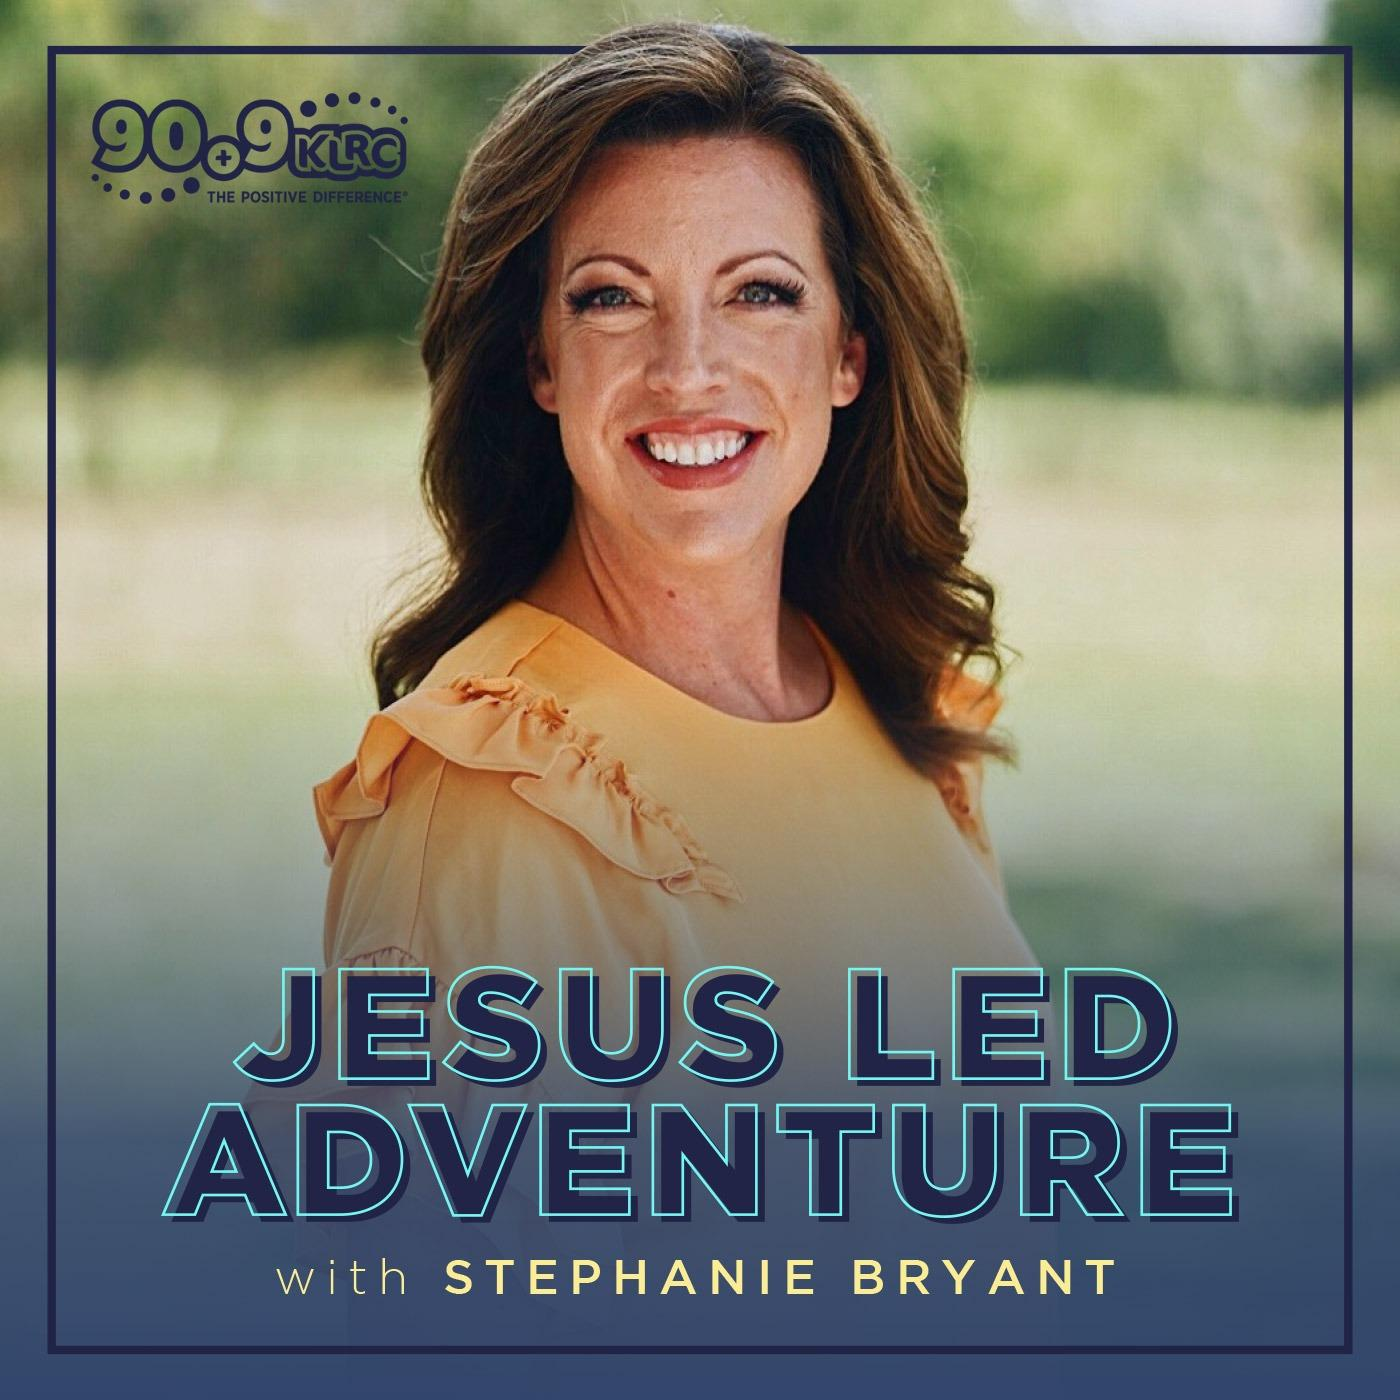 Jesus Led Adventure with Stephanie Bryant